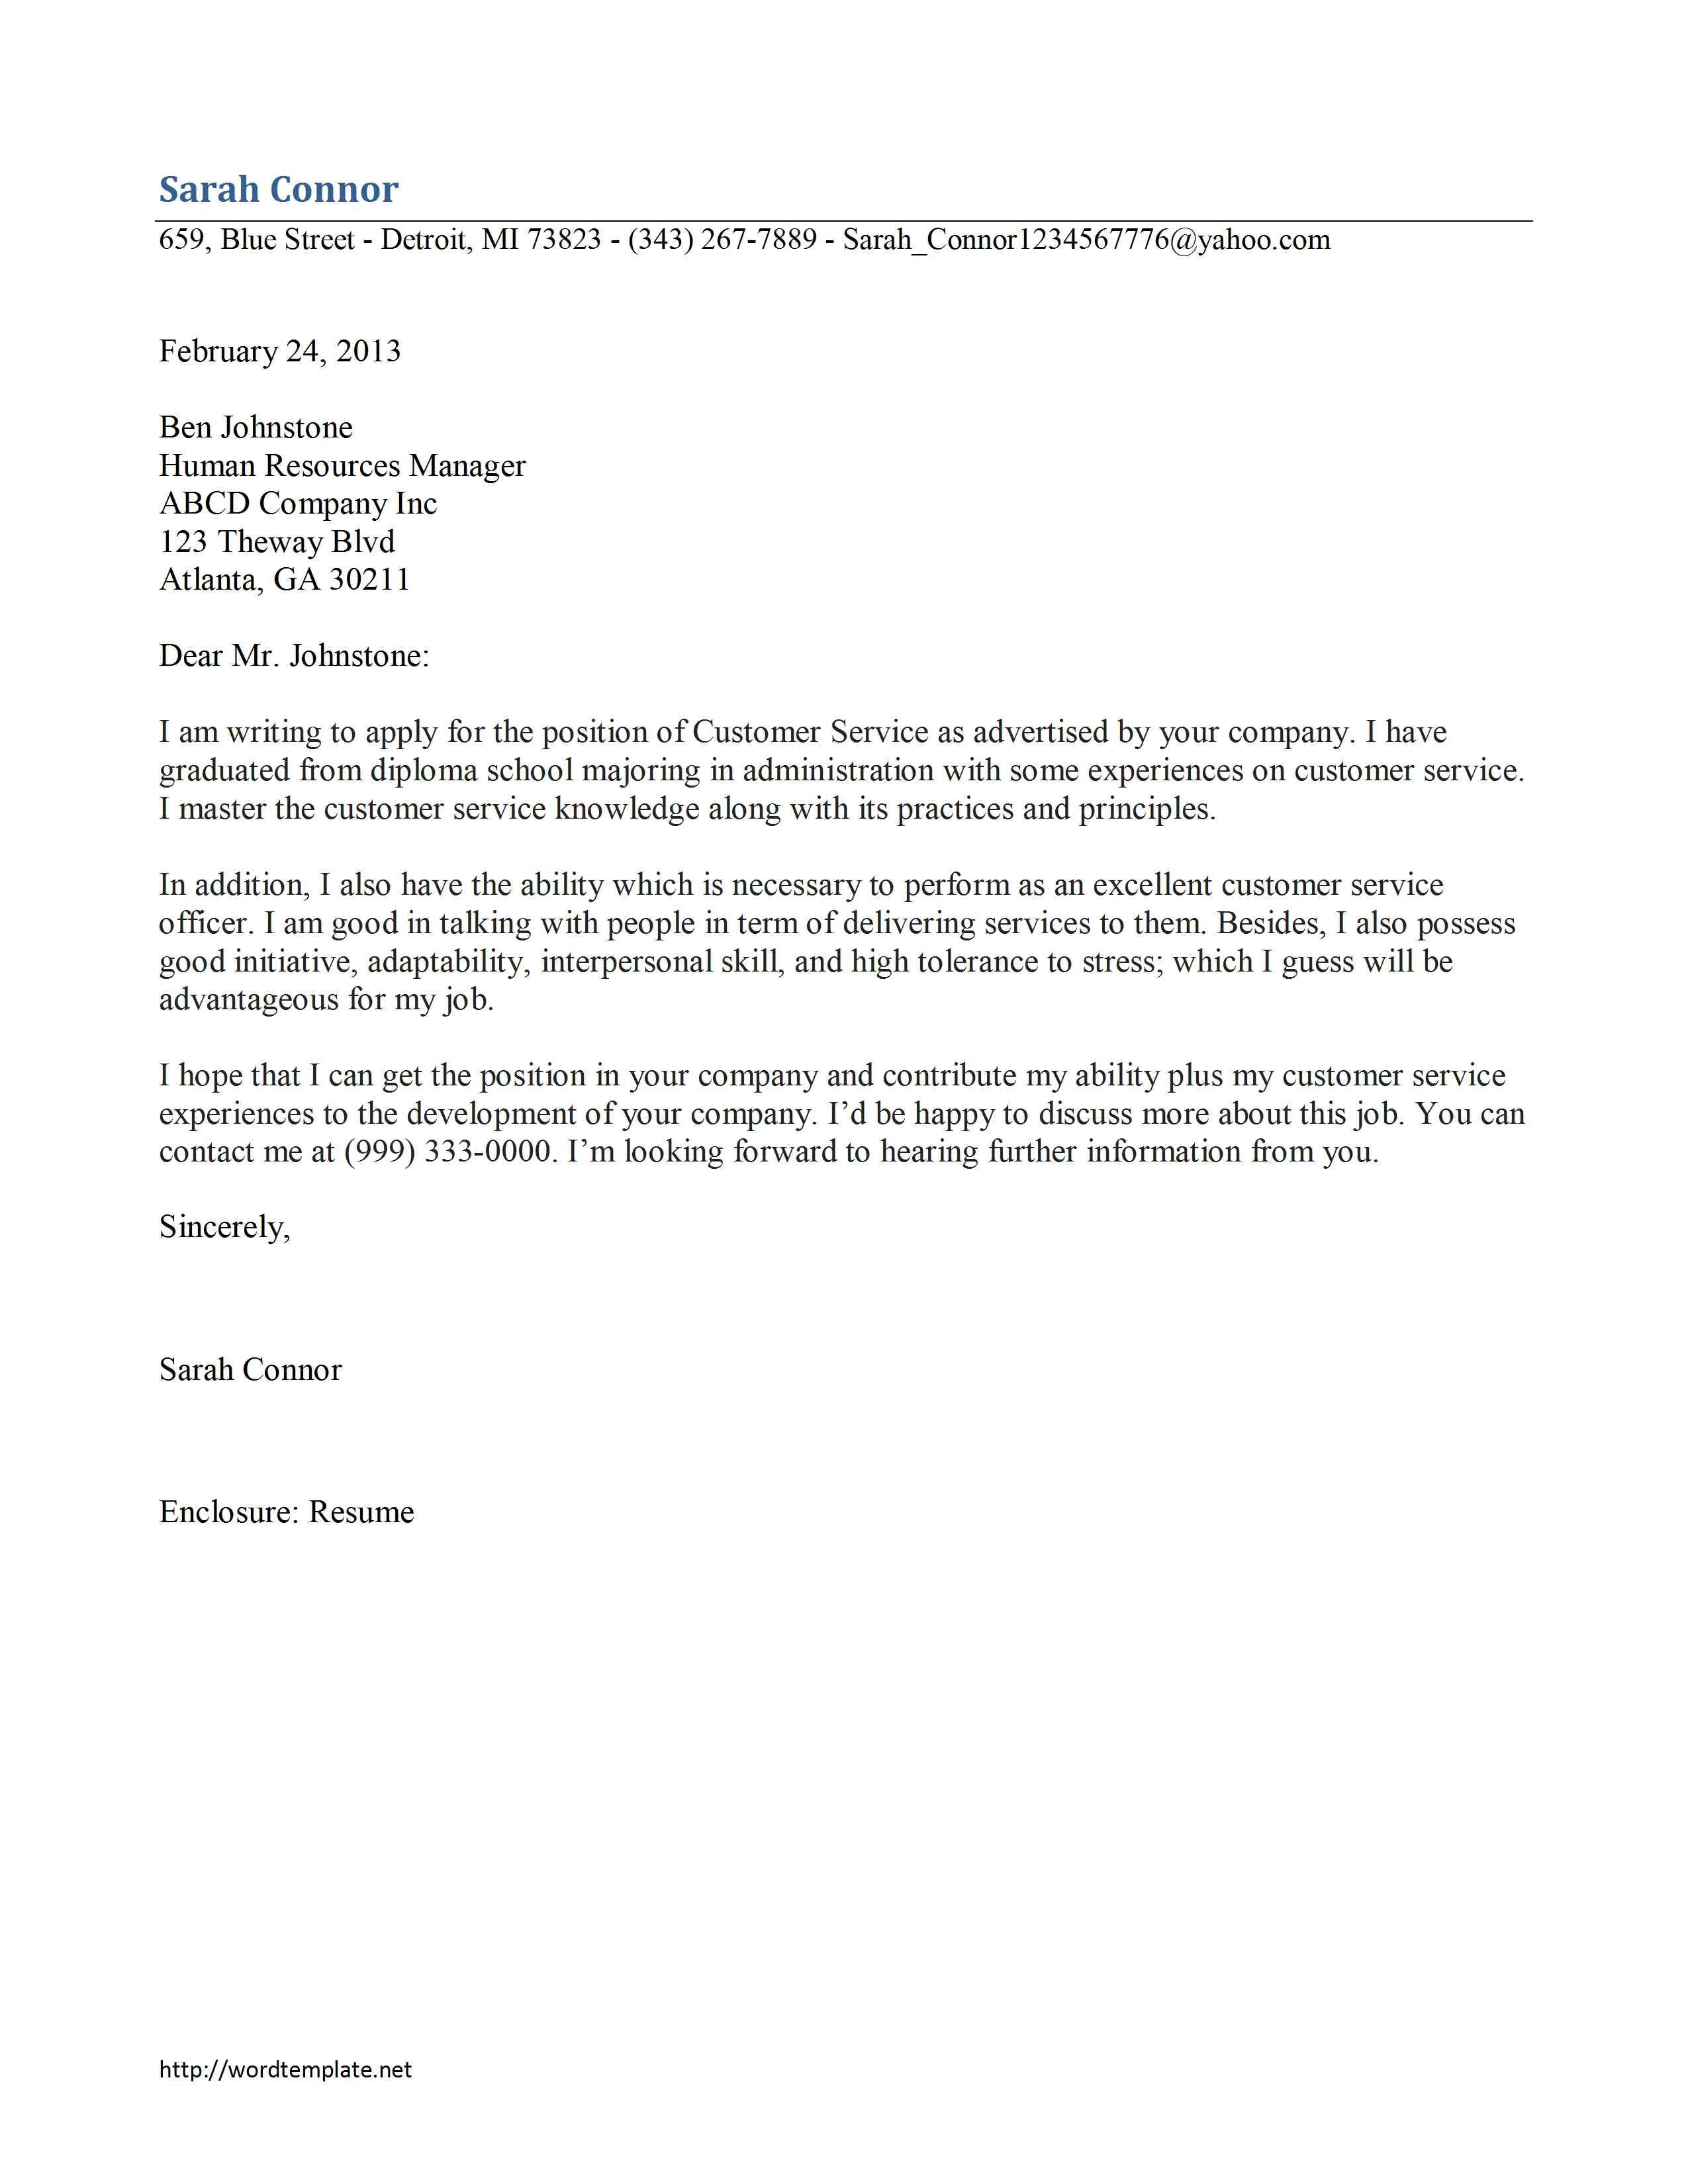 Customer Service Cover Letter Template Free Microsoft Word